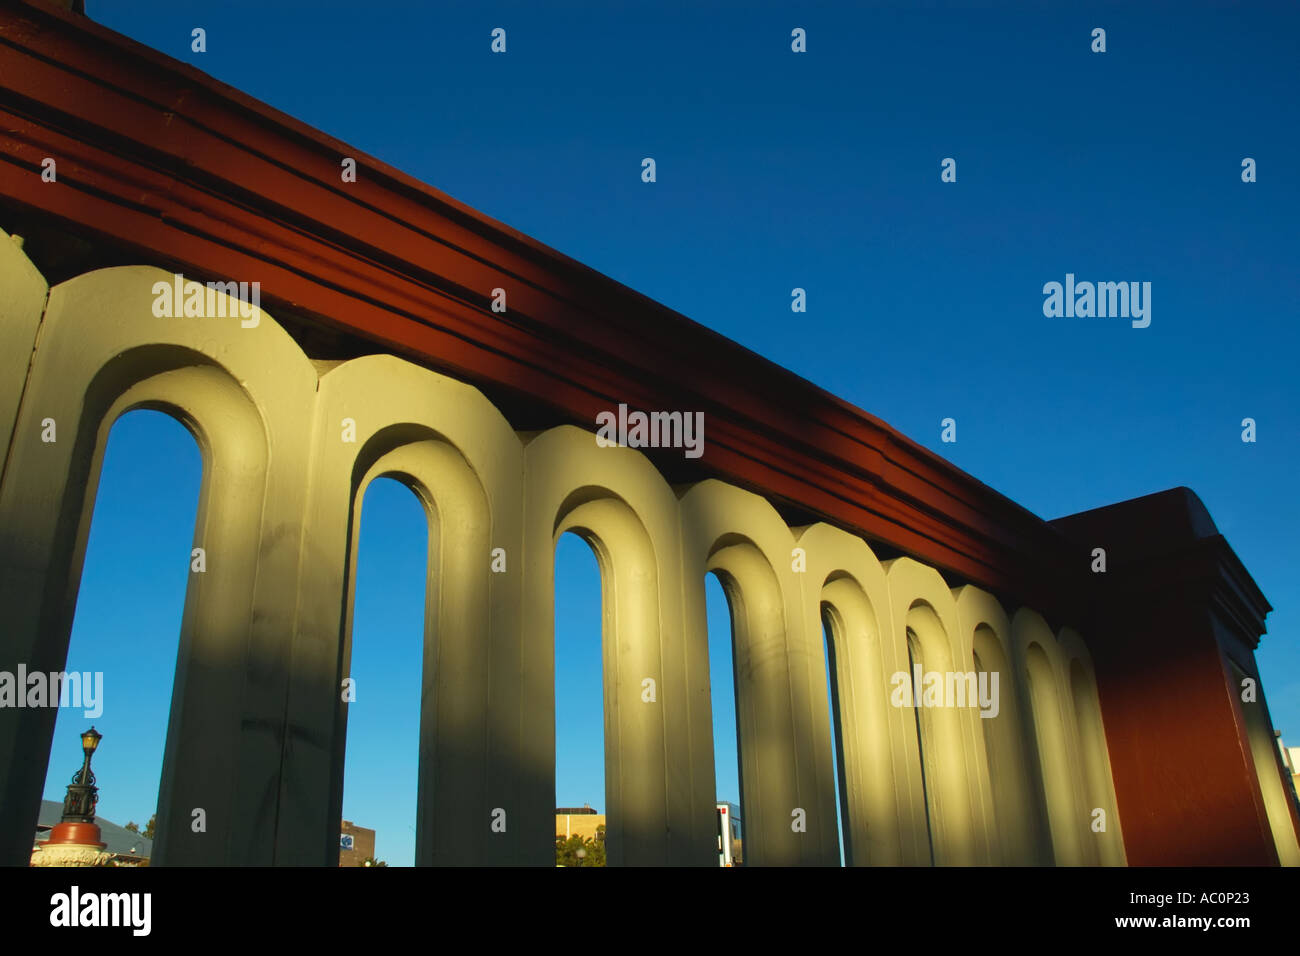 Western Australia Perth Vicinity of Railway Station 19th century style wall with decorative arches in warm afternoon sun - Stock Image